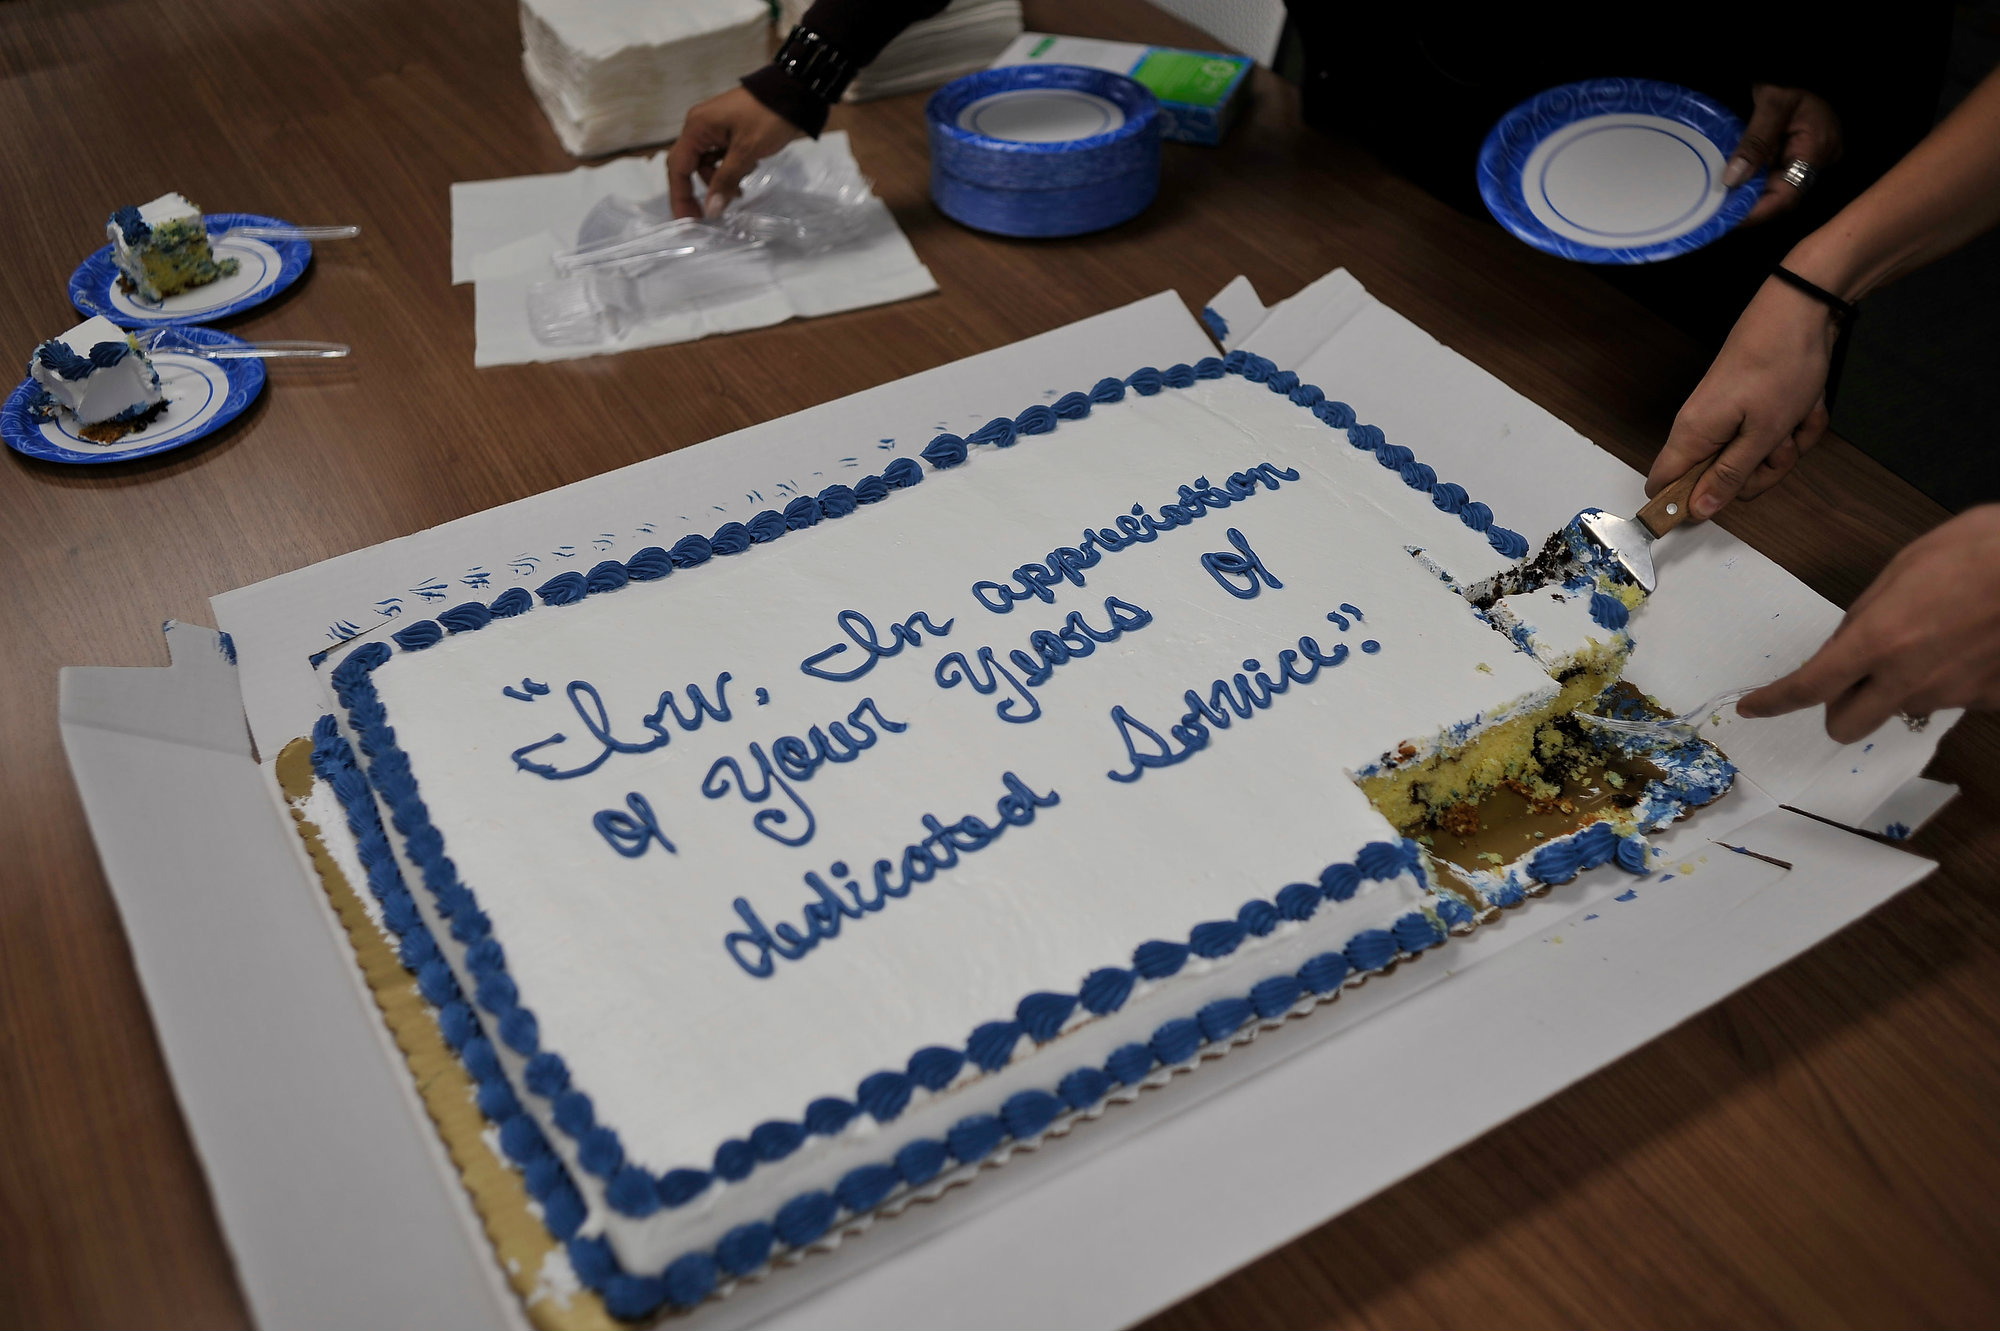 The cake Irv and staffers enjoyed during the celebration. Photo by Pat Traylor